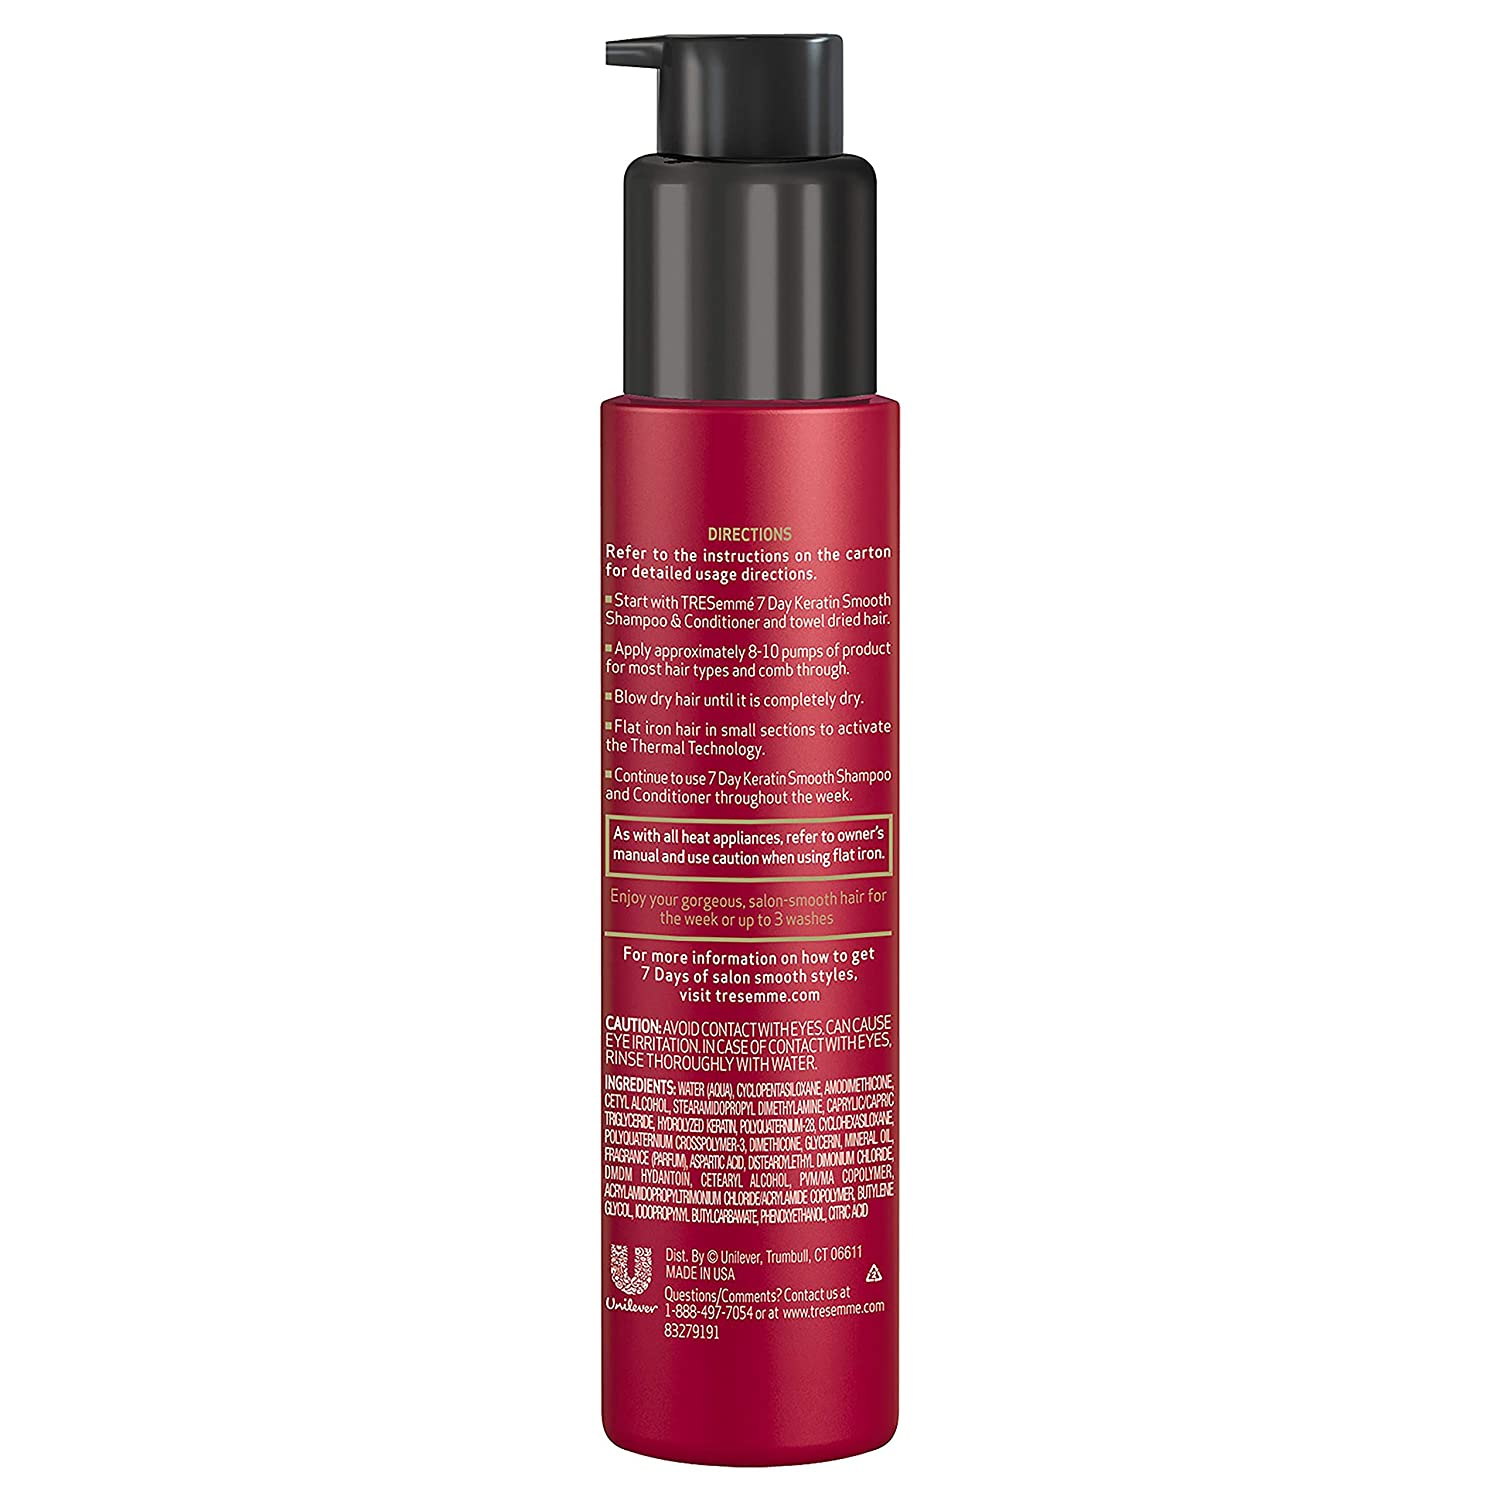 Clarifier for hair requires caution in applying